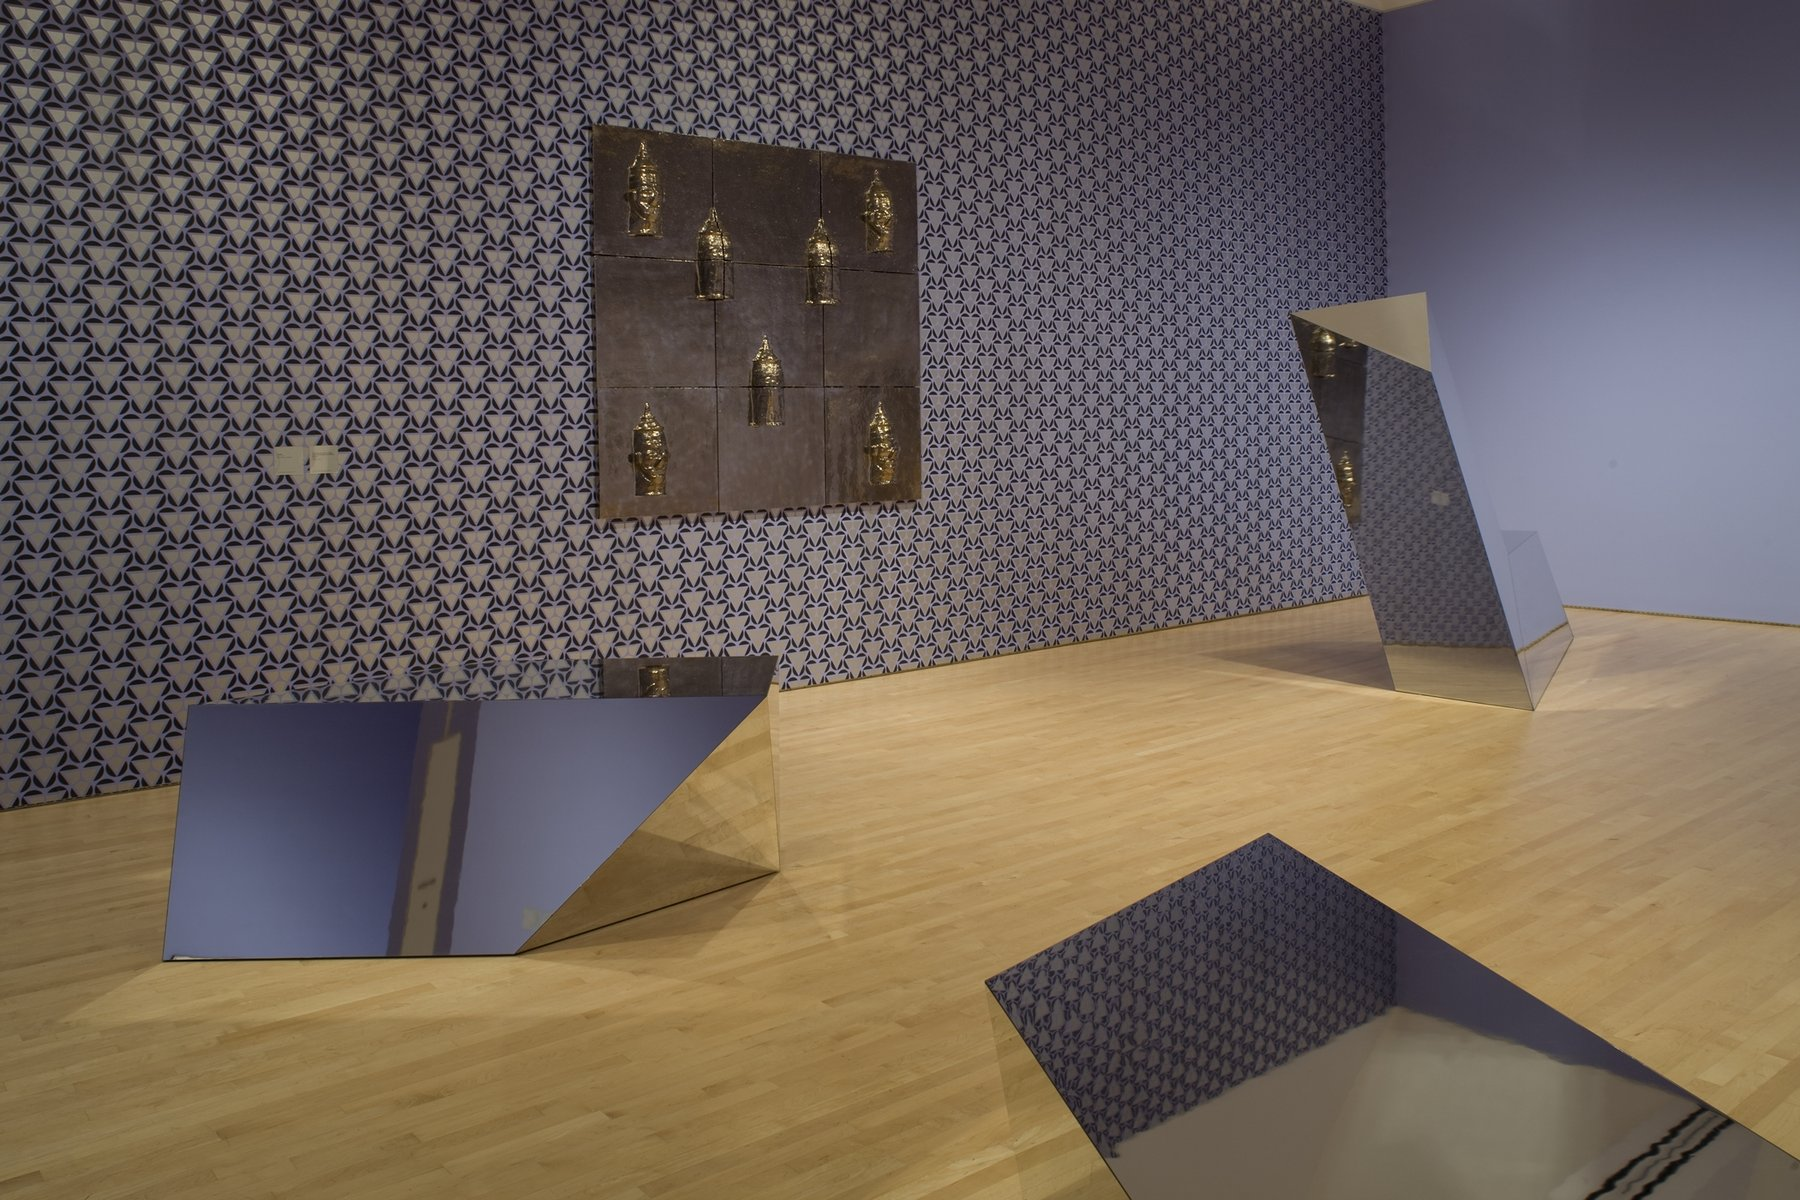 Three reflective geometric sculptures and a wall-hanging sculptures in a room with patterned wallpaper